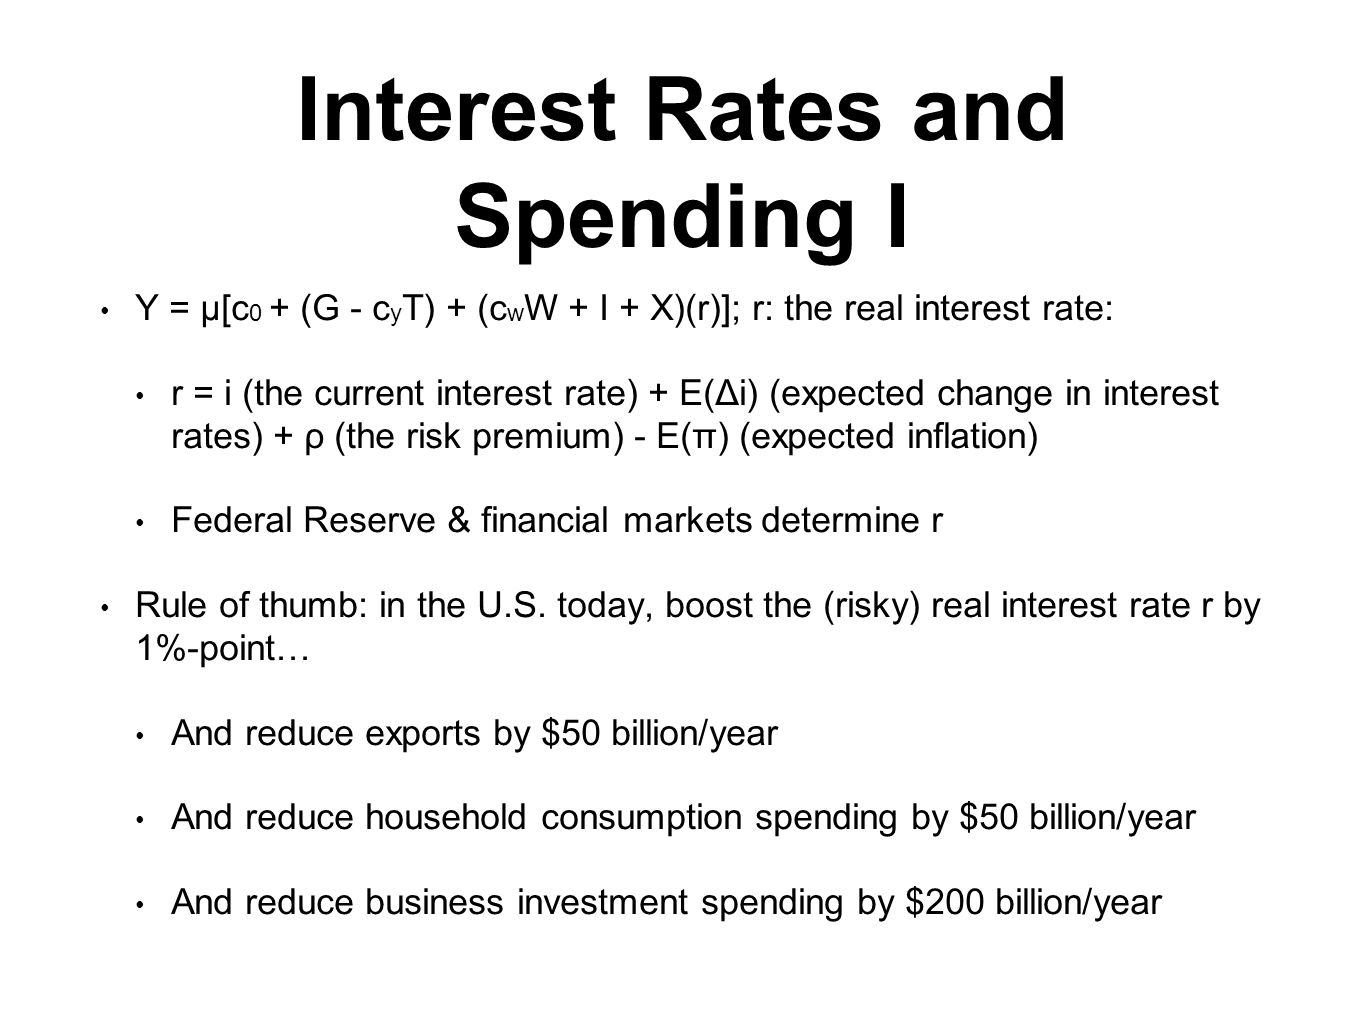 Interest Rates and Spending I Y = μ[c 0 + (G - c y T) + (c w W + I + X)(r)]; r: the real interest rate: r = i (the current interest rate) + E(Δi) (expected change in interest rates) + ρ (the risk premium) - E(π) (expected inflation) Federal Reserve & financial markets determine r Rule of thumb: in the U.S.